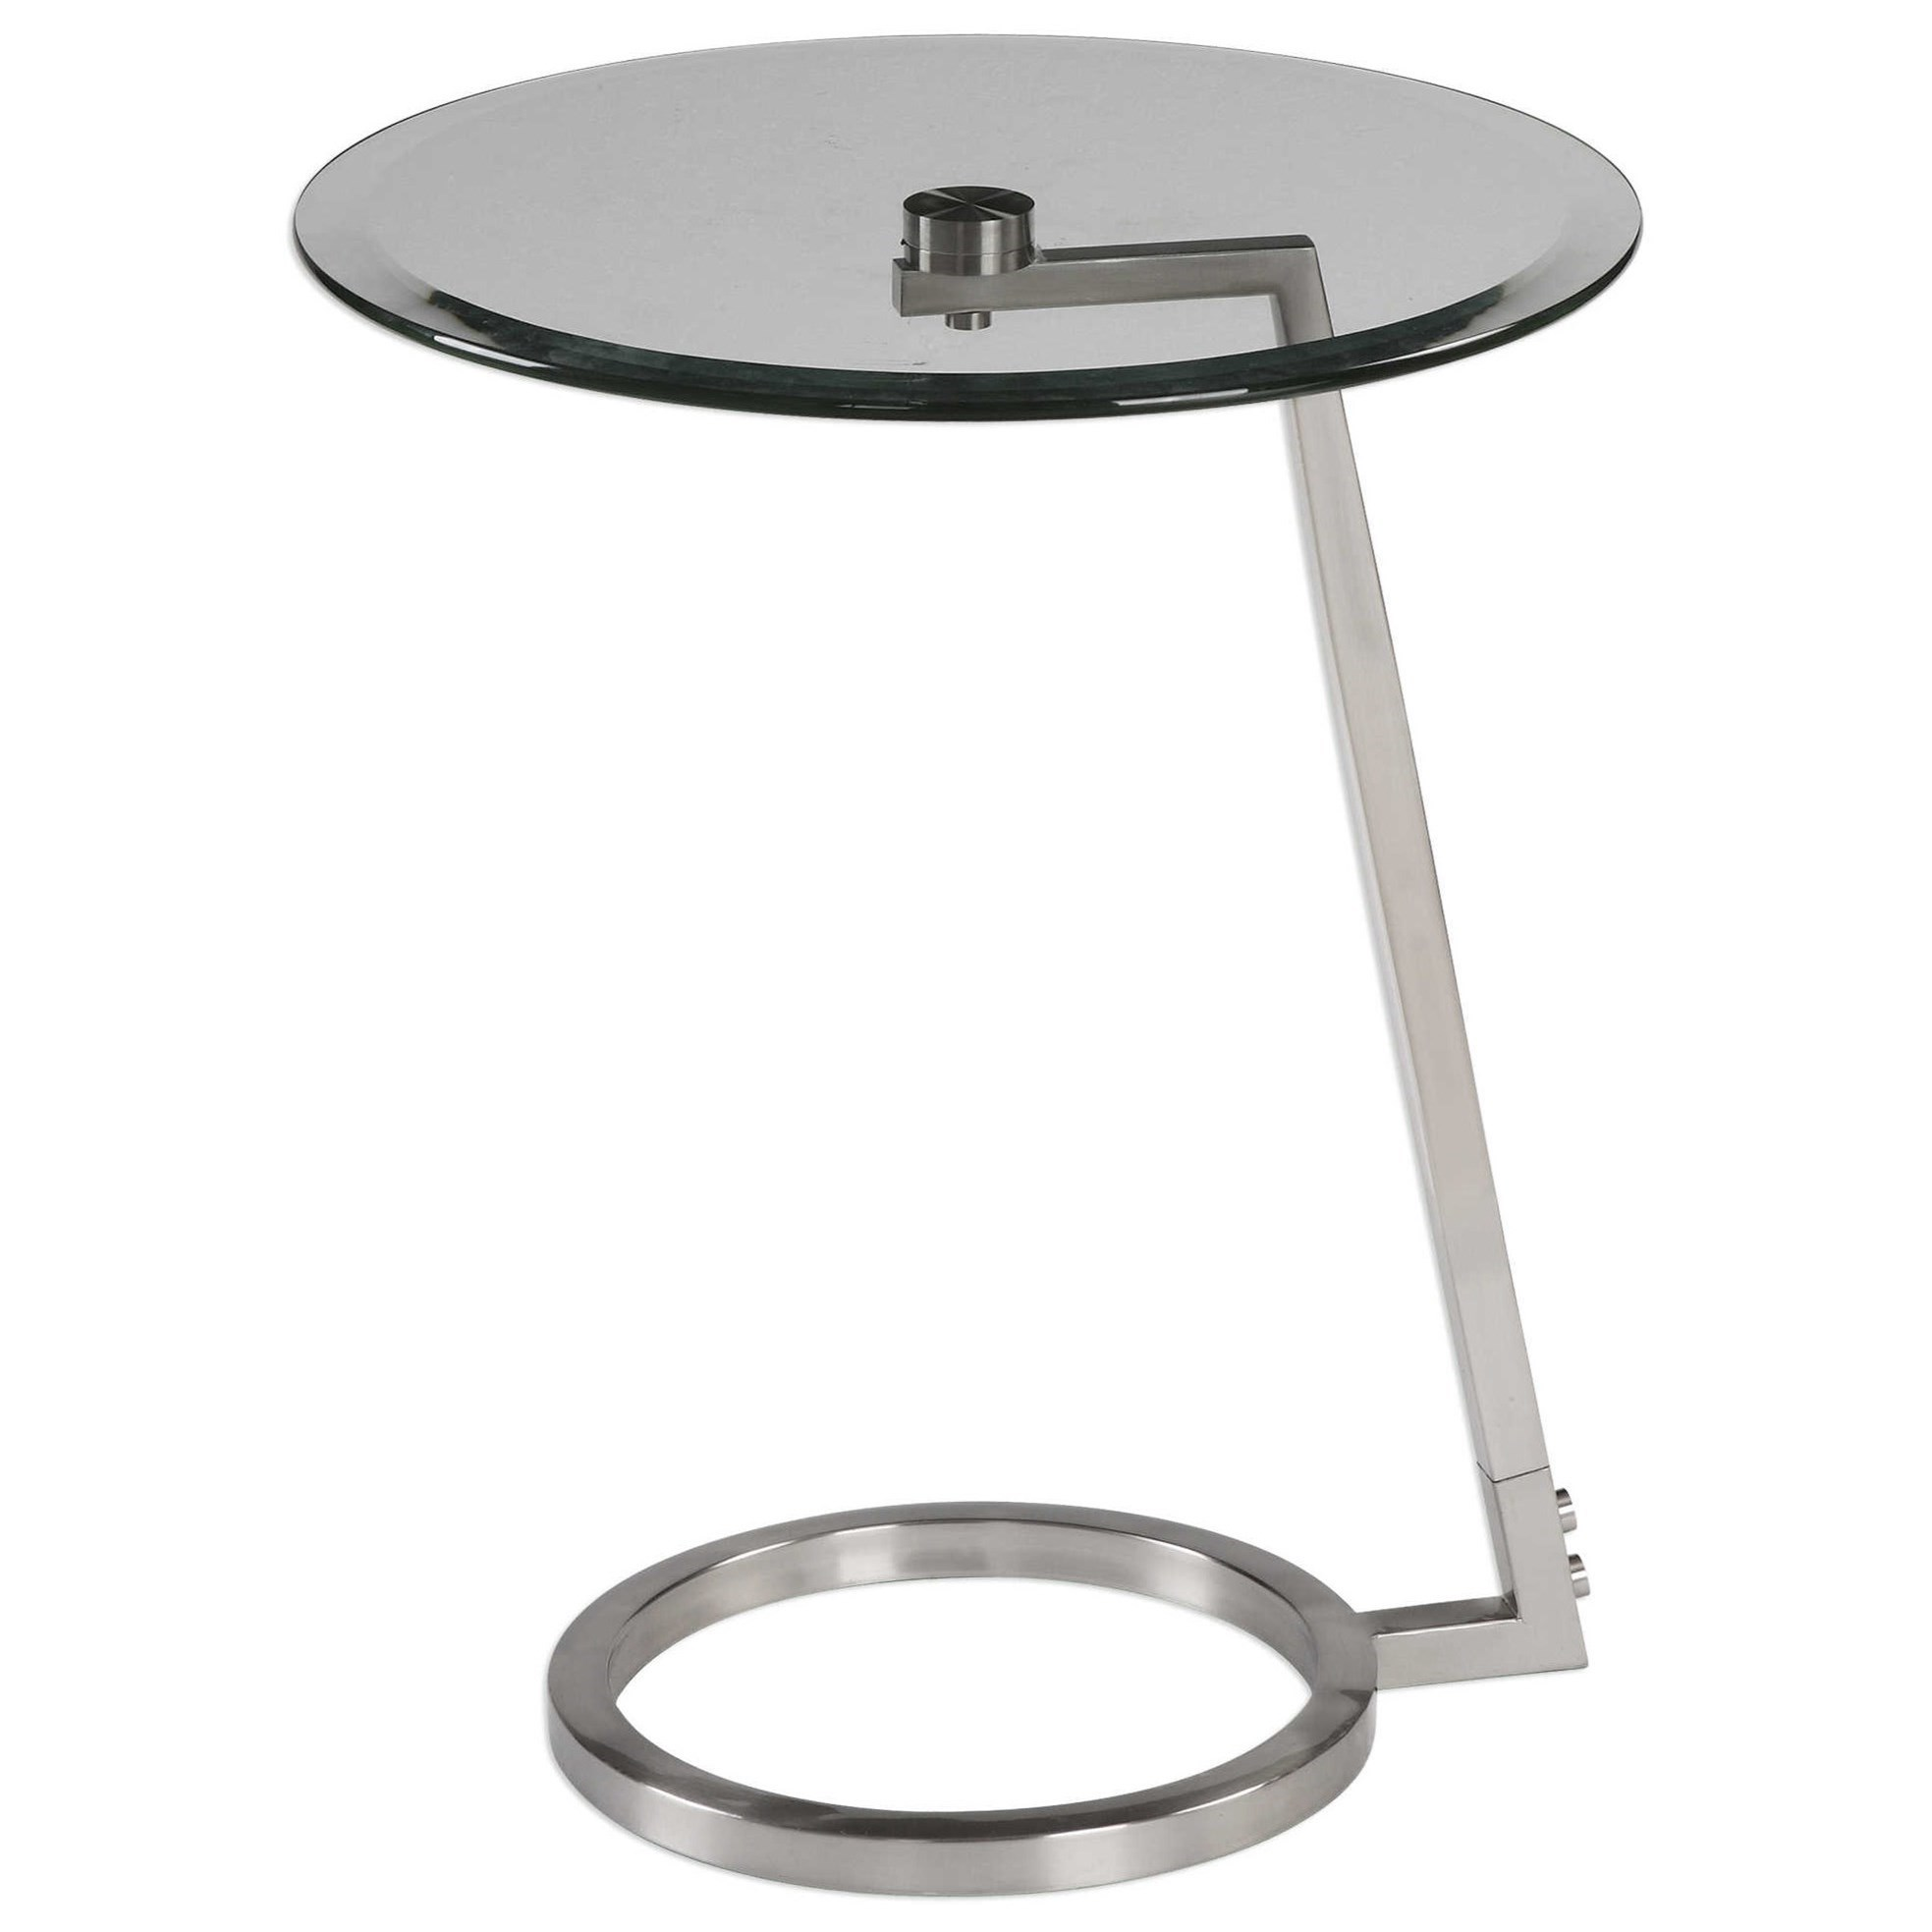 Uttermost Accent Furniture Ordino Modern Accent Table - Item Number: 24732